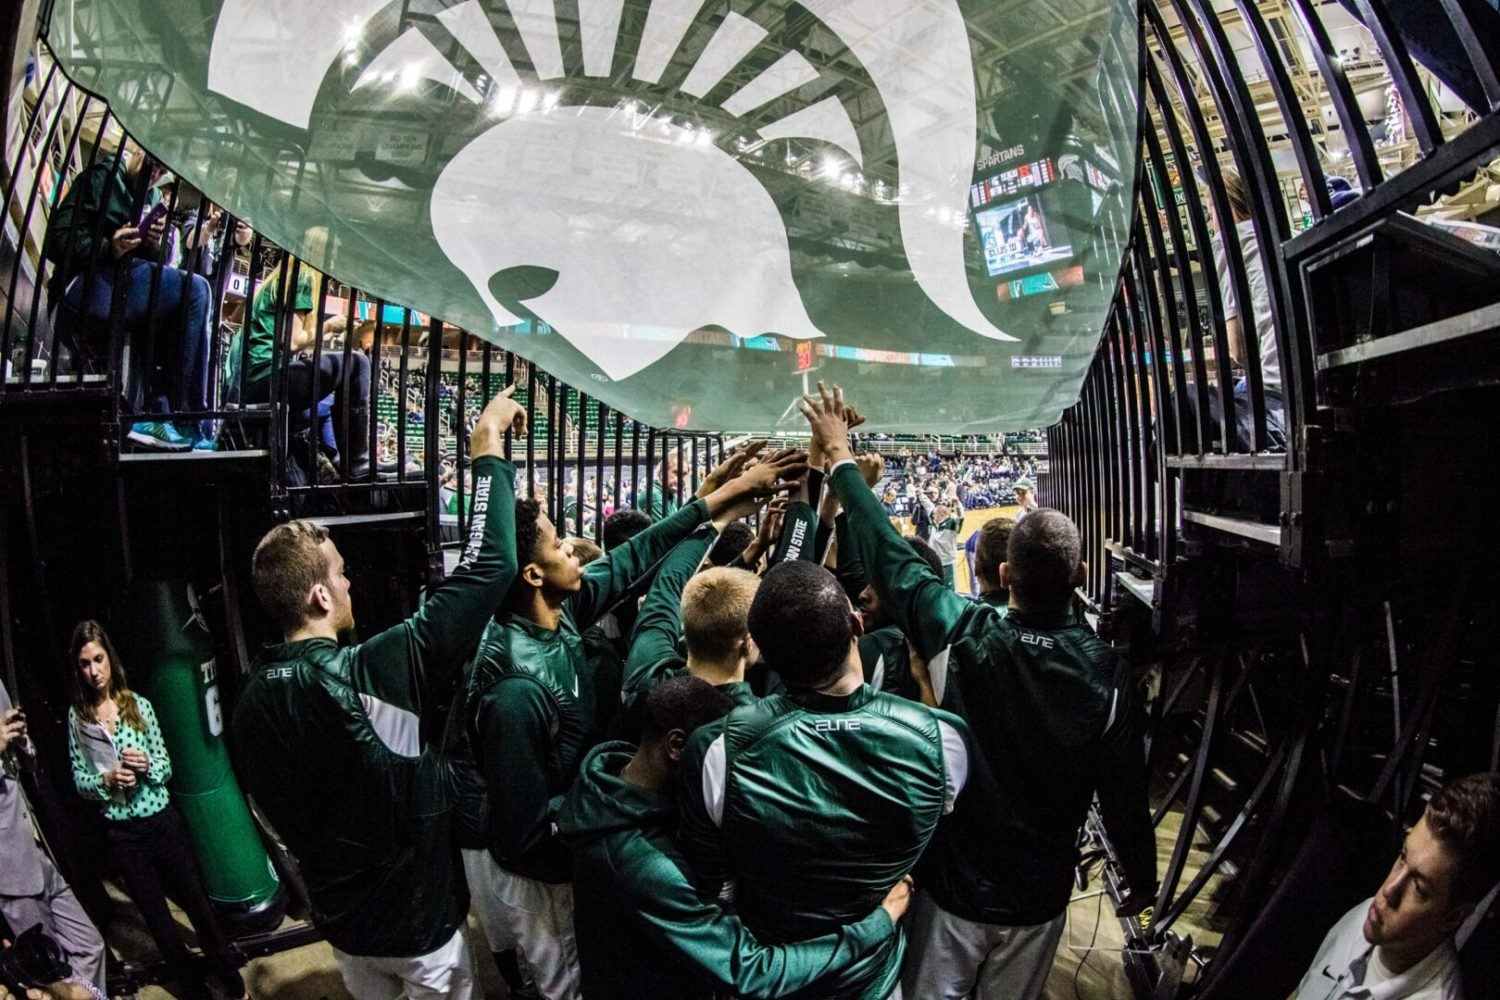 Check out a sneak peek of February's upcoming magazine with photos from the MSU win over Rutgers